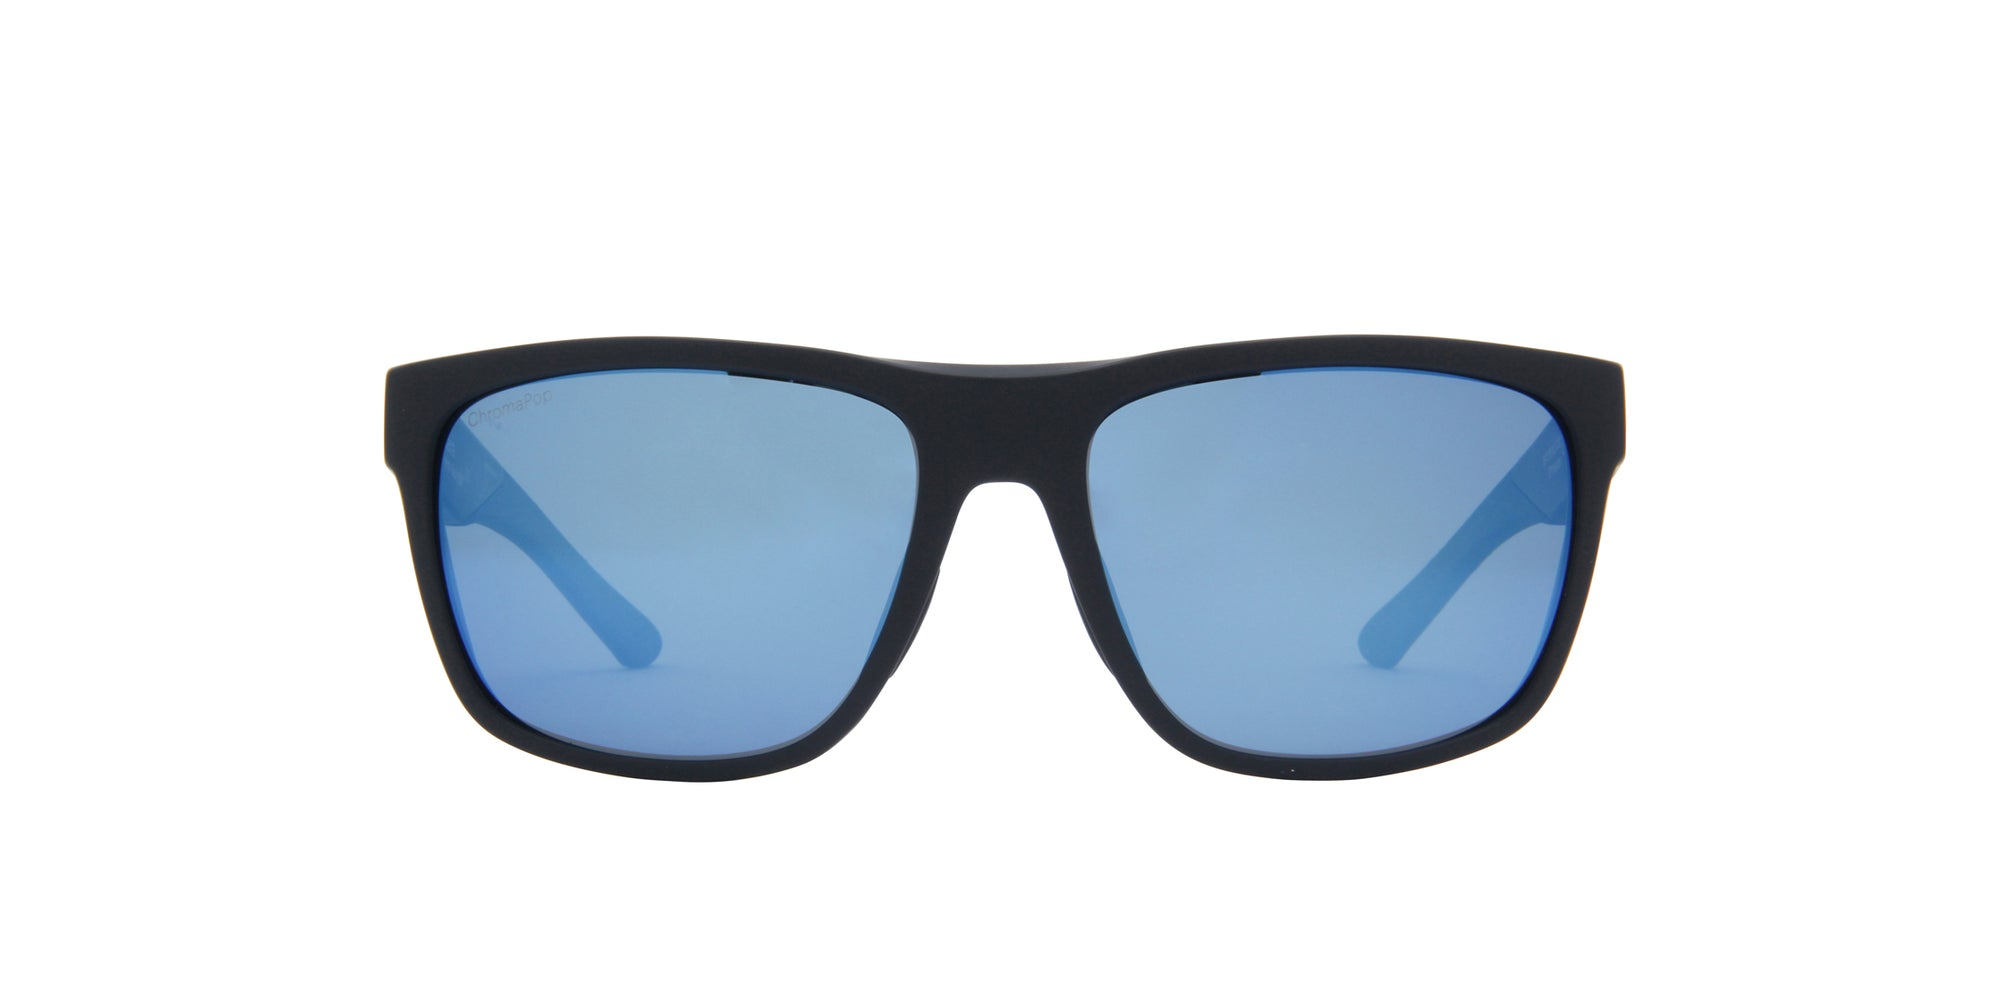 Smith - Barra Matte Black/ChromaPop Polarized Blue Square Men Sunglasses - 59mm